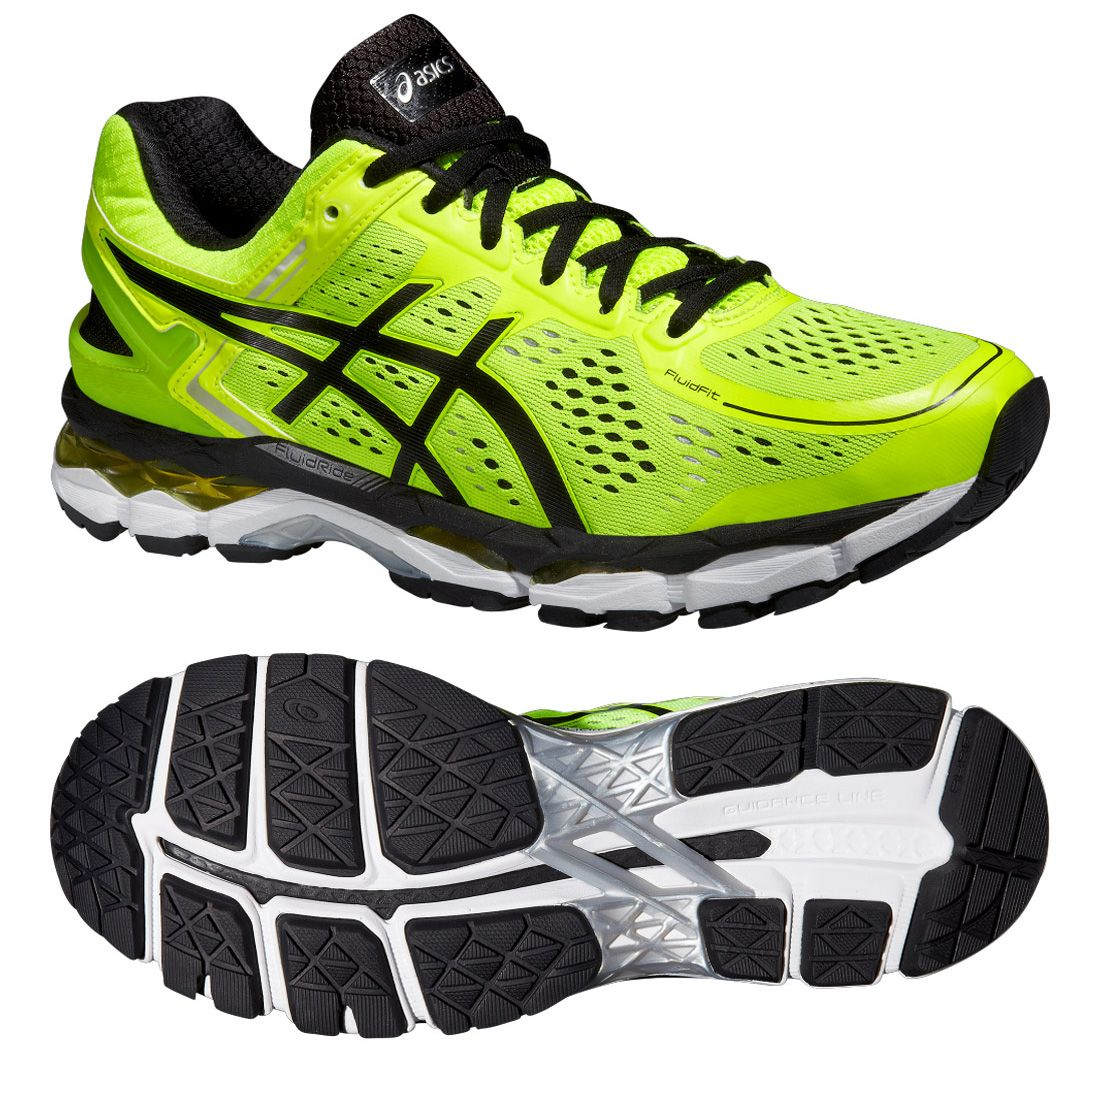 Mens Running Shoes With Most Cushioning